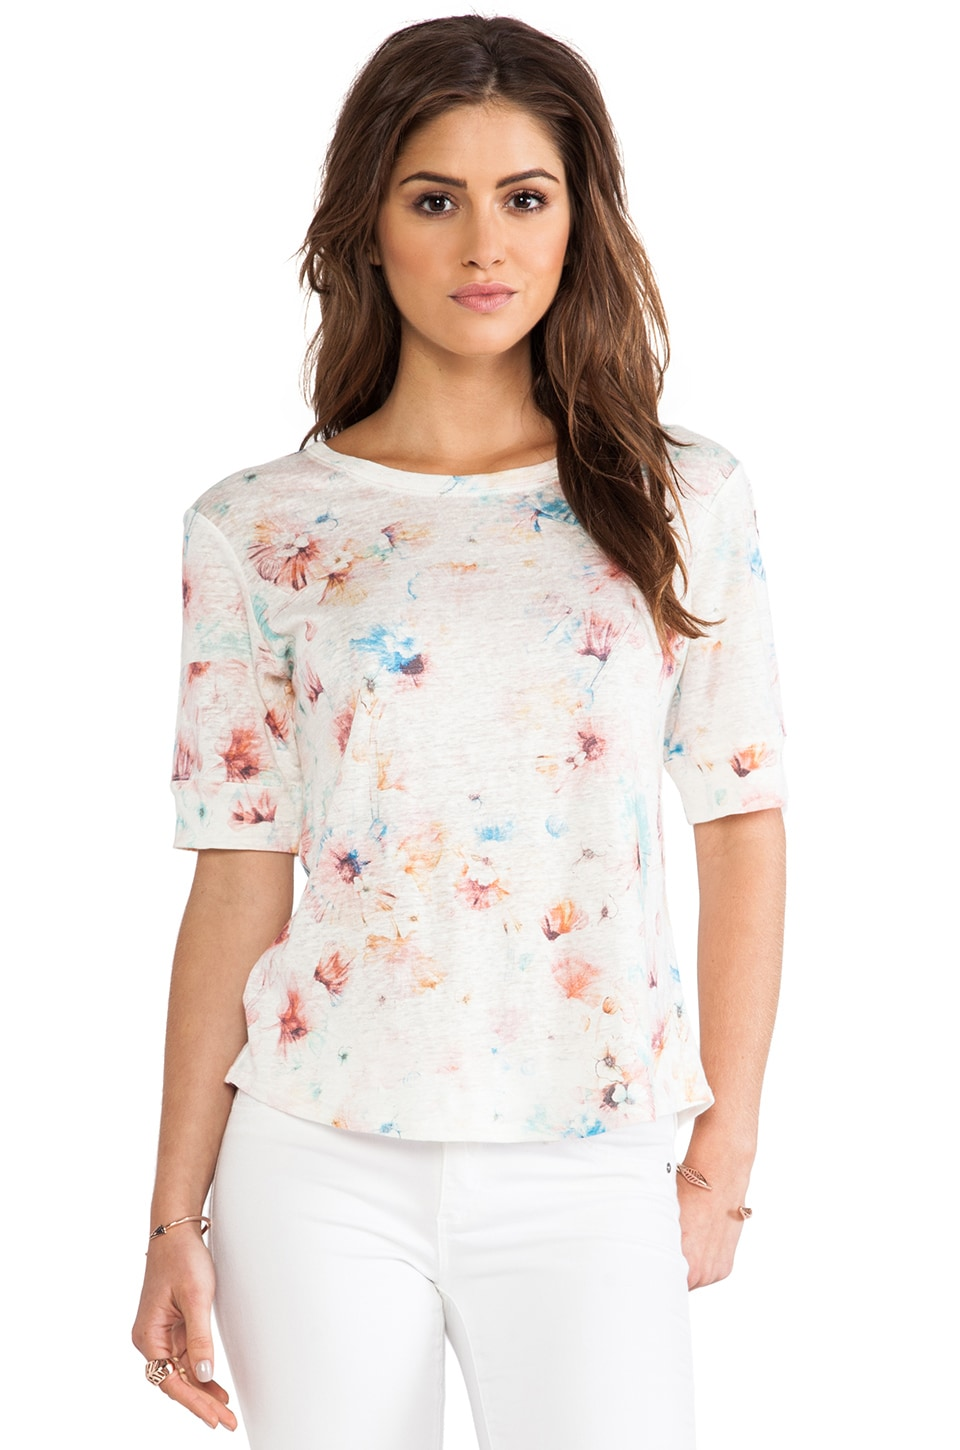 Rebecca Taylor Poppy Blossom Tee in Cream